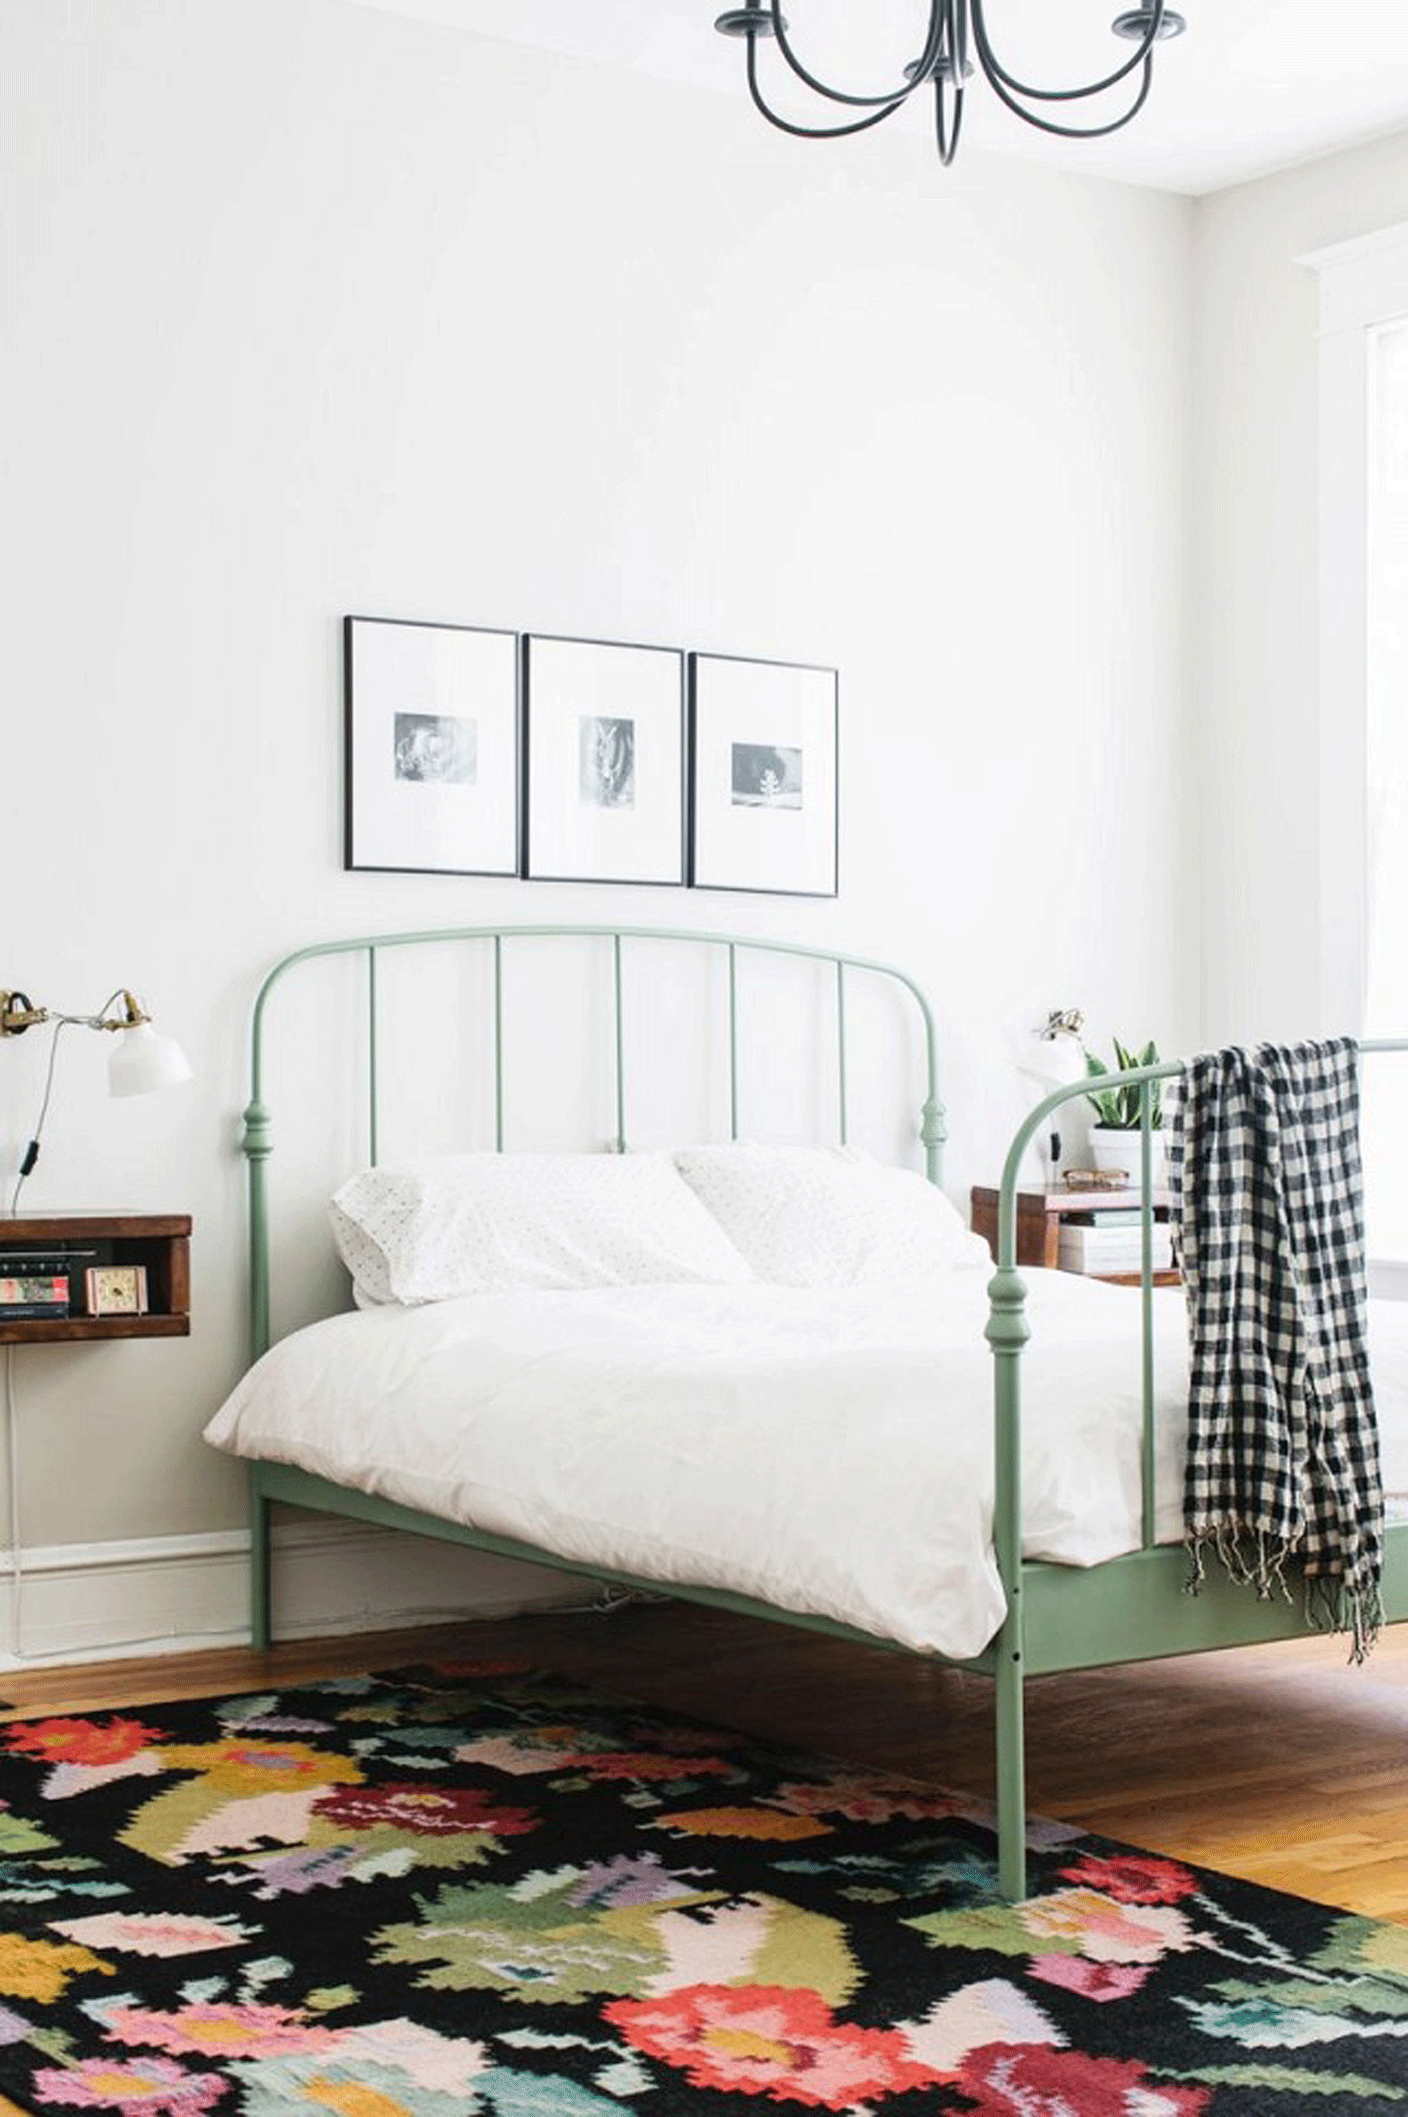 miss prints finds an iron bed frame | @themissprints